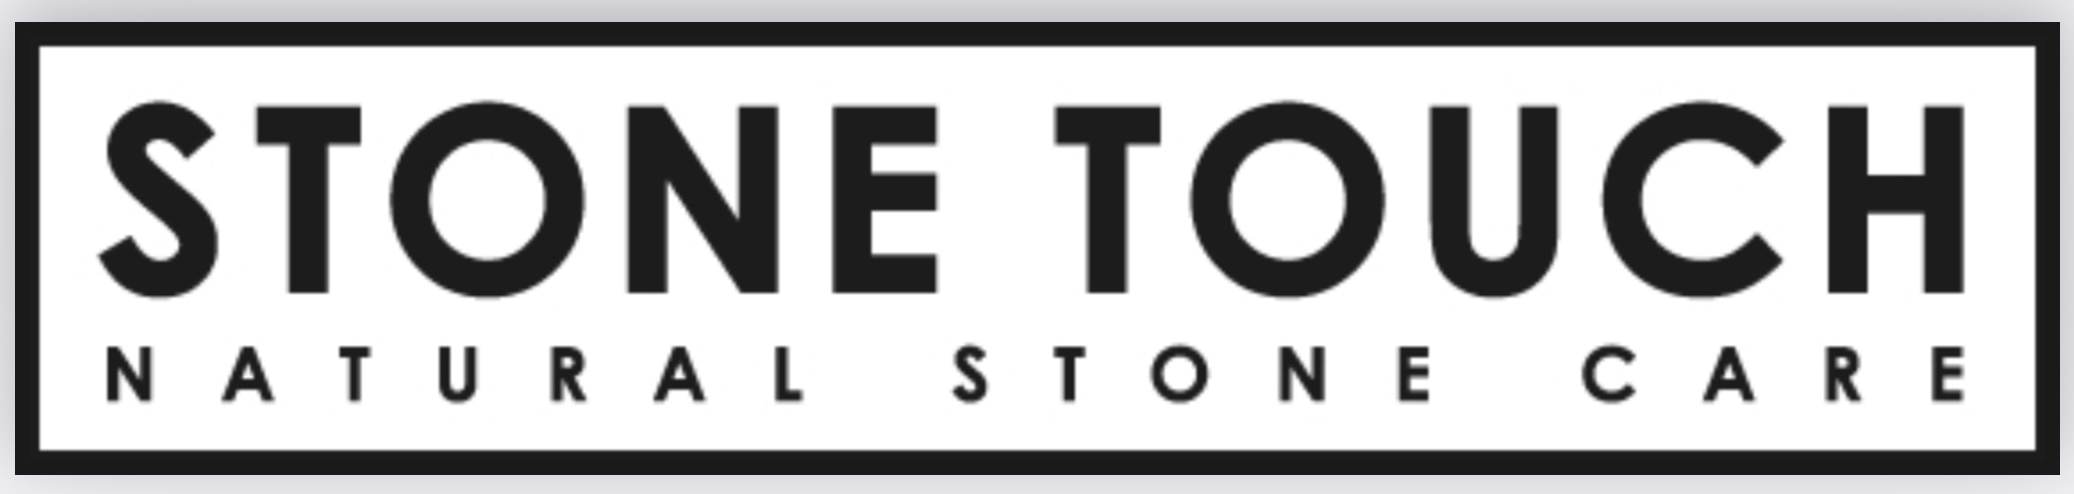 Stone Touch Natural Stone Care logo